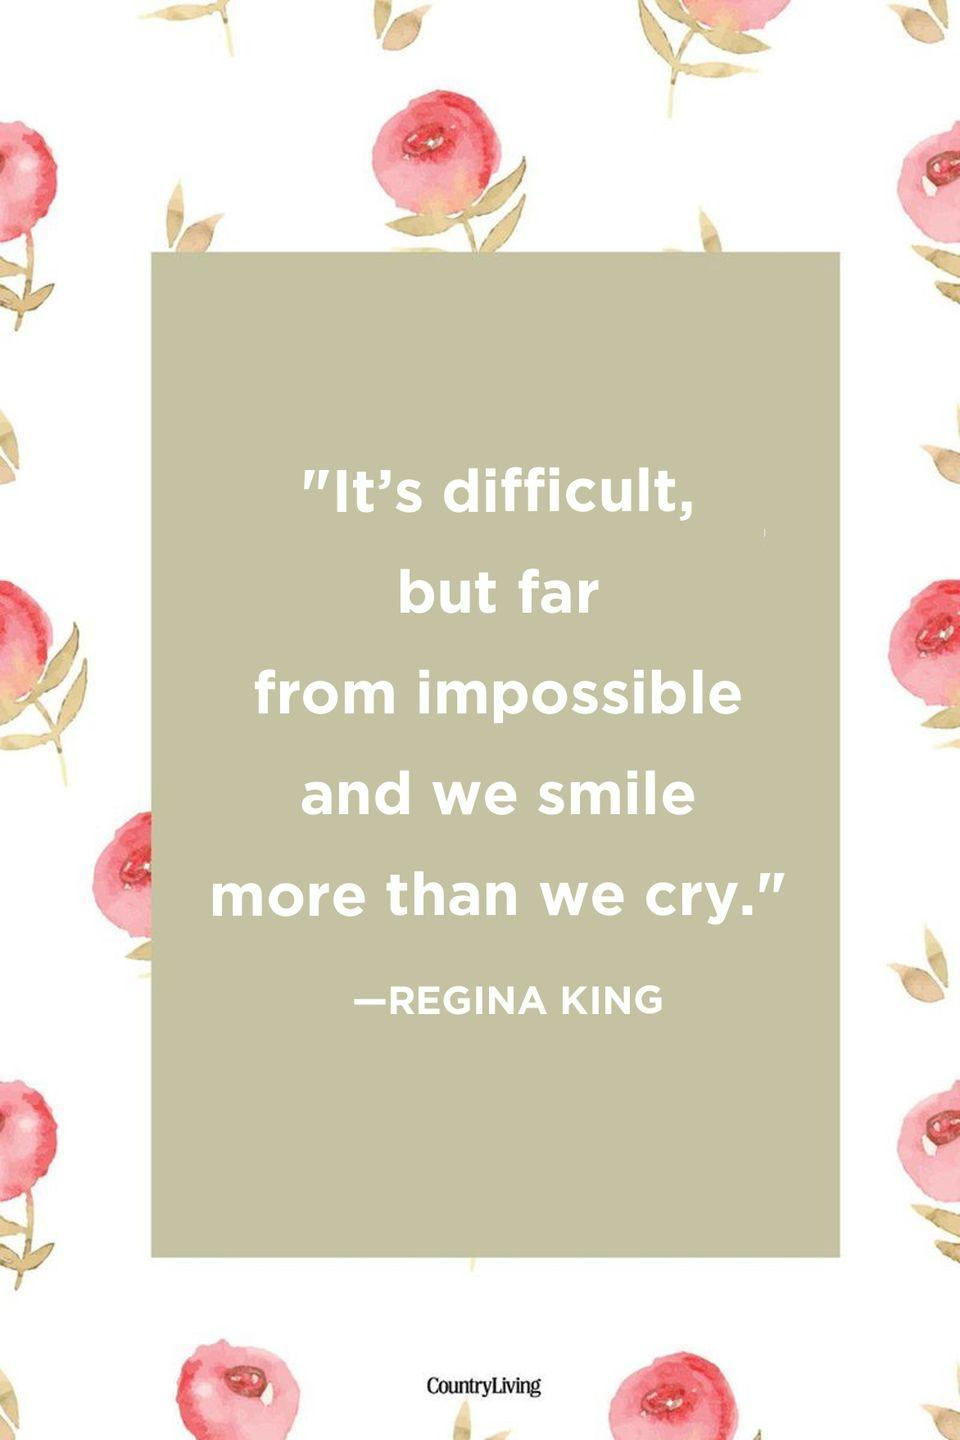 "<p>""It's difficult, but far from impossible and we smile more than we cry.""</p>"